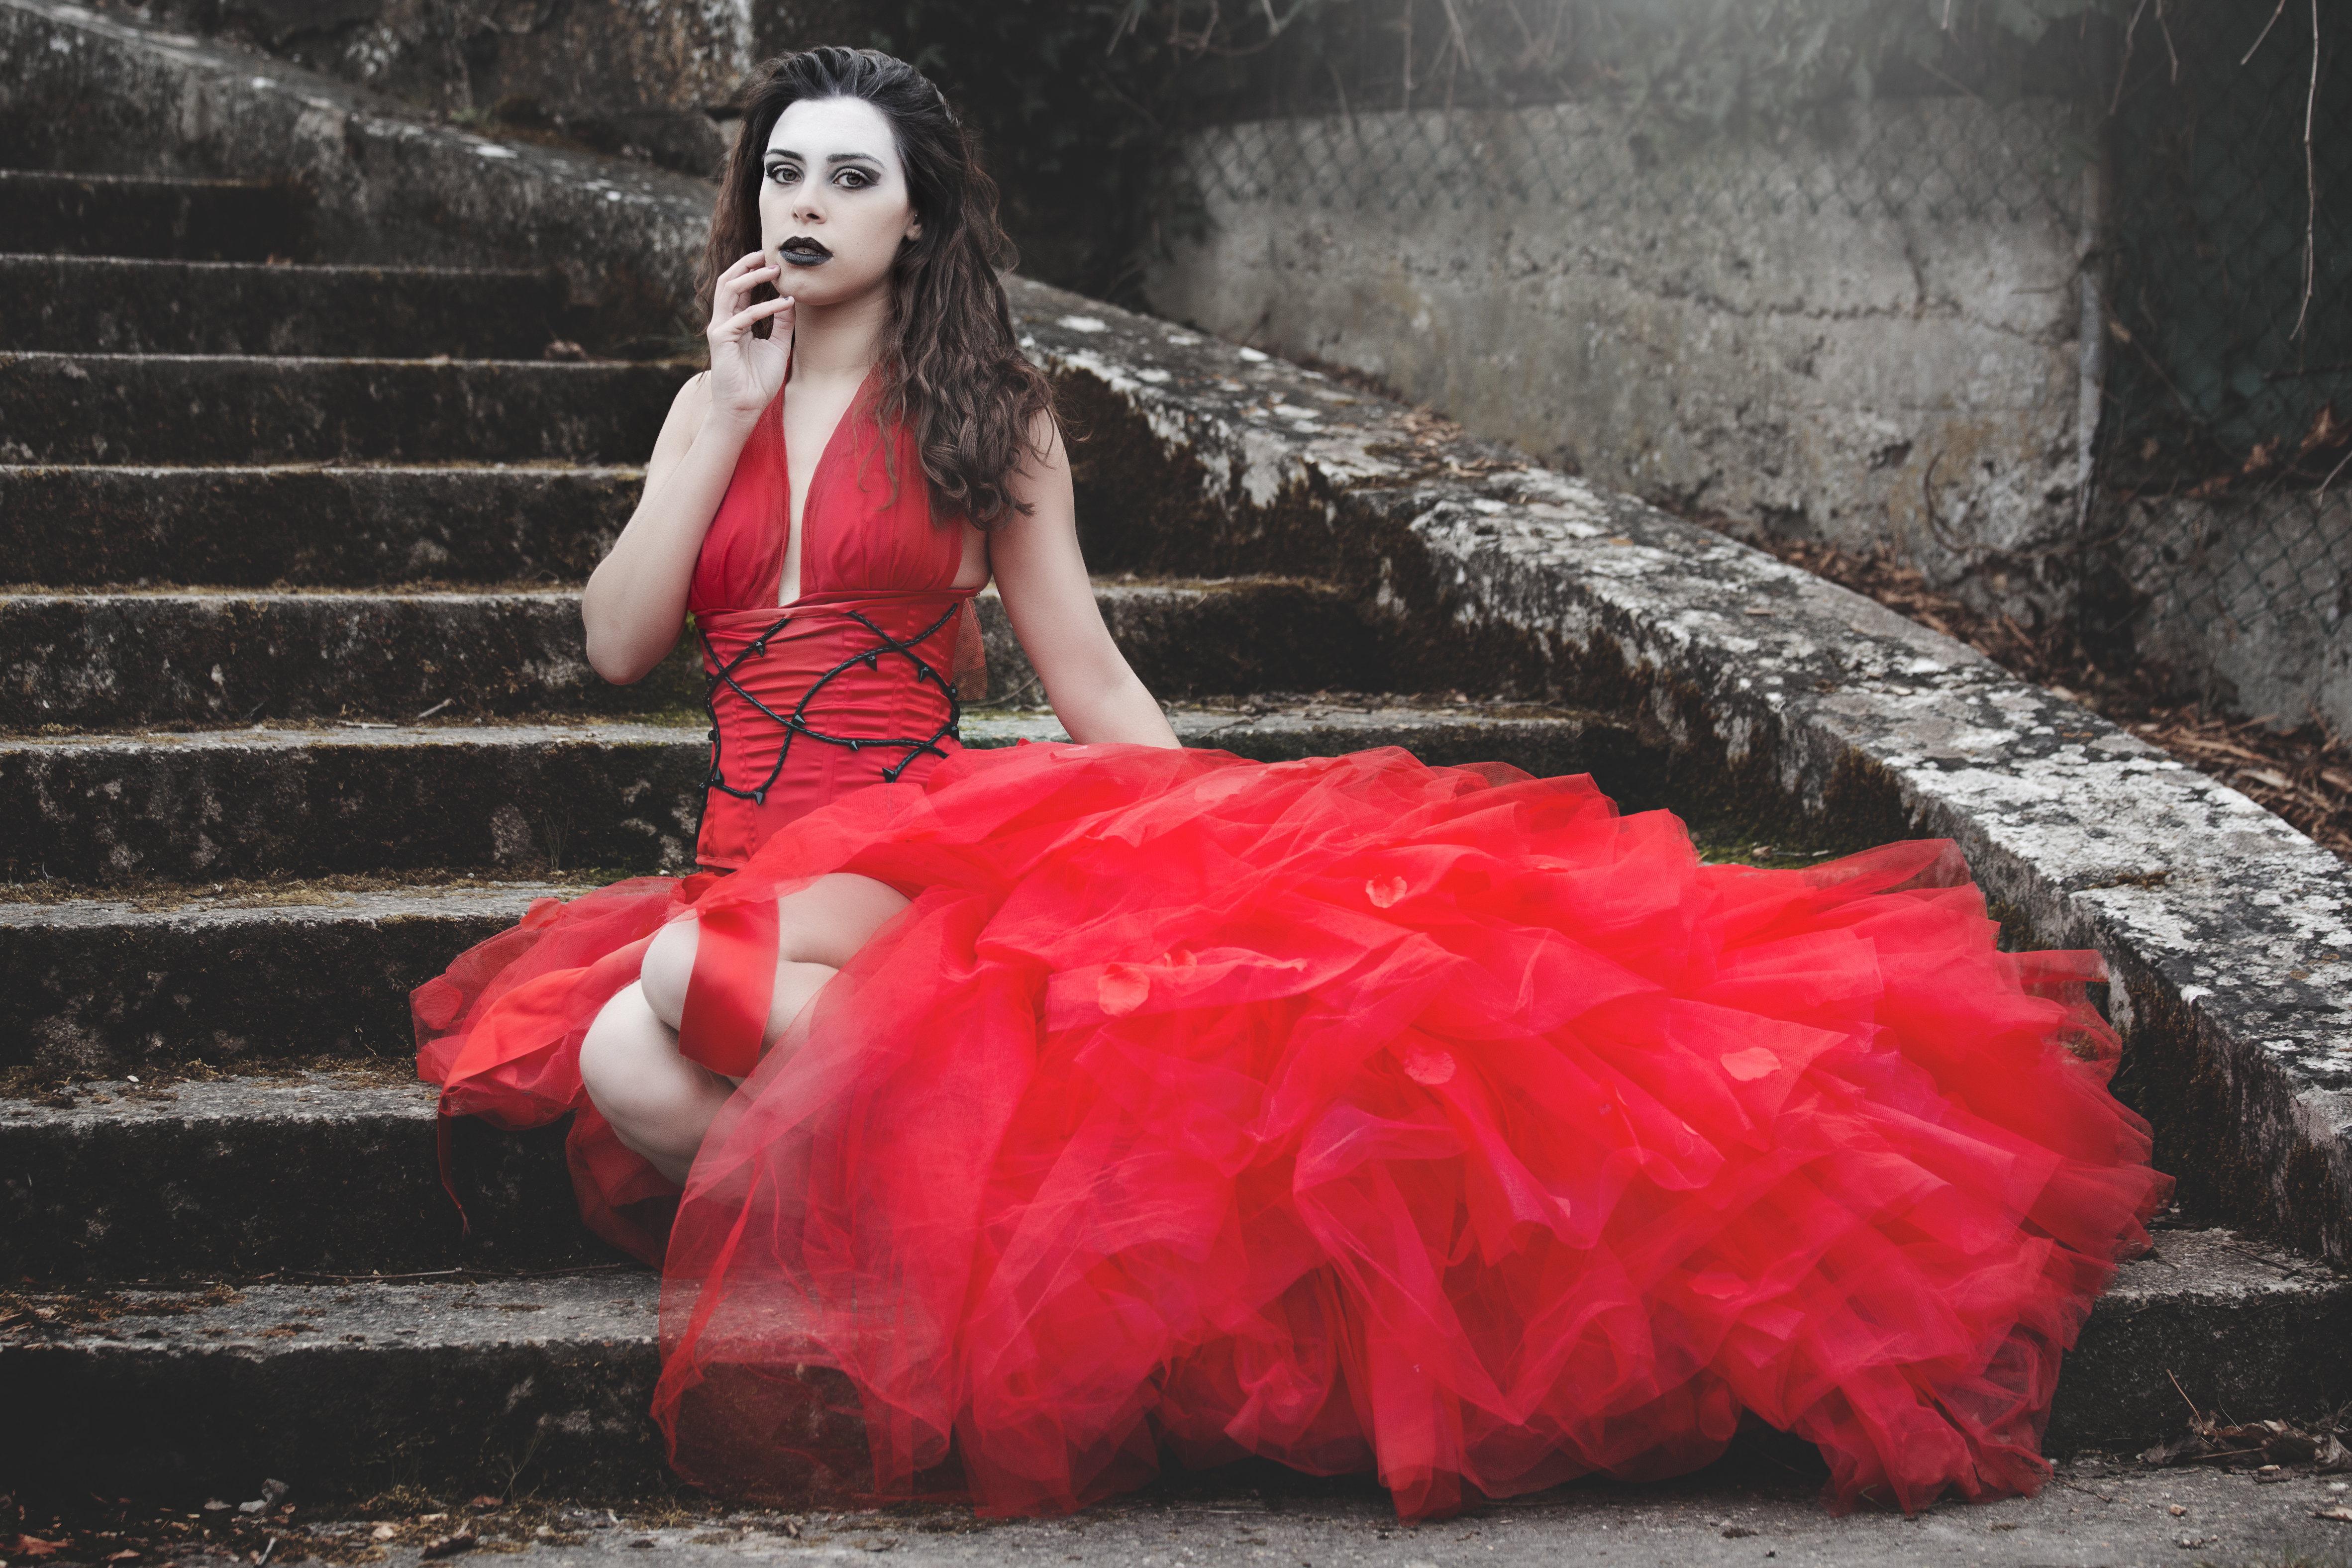 Greed&Pride Red satin and tulle dress and underbust corset